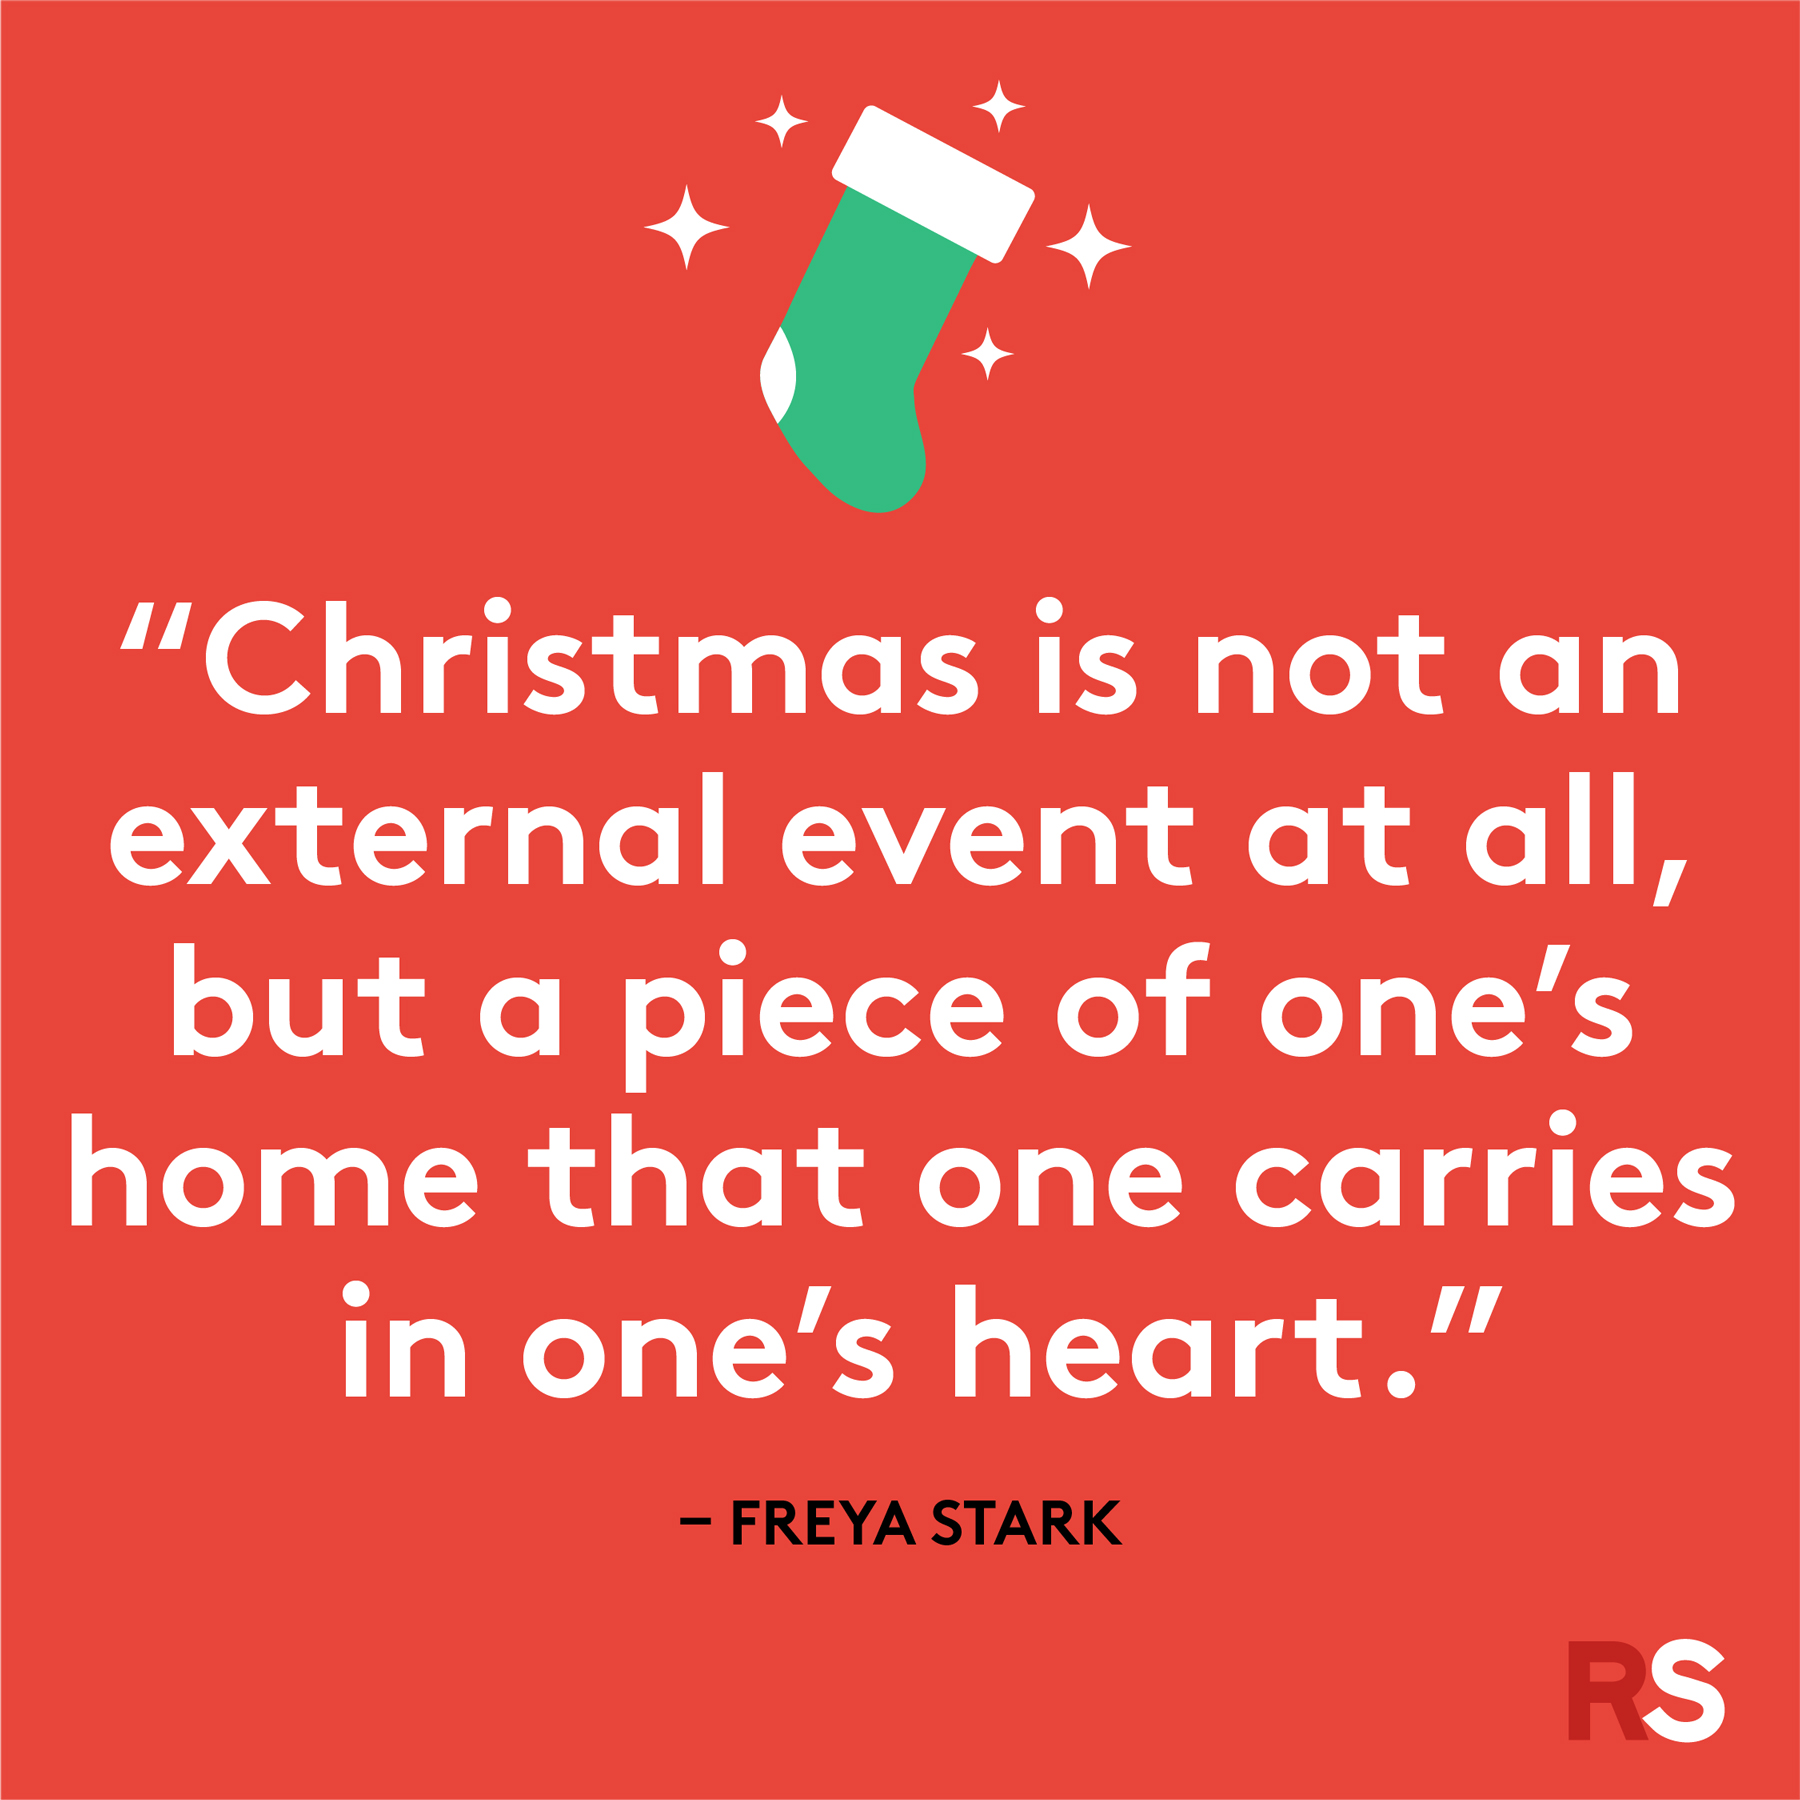 Best Christmas quotes - Freya Stark